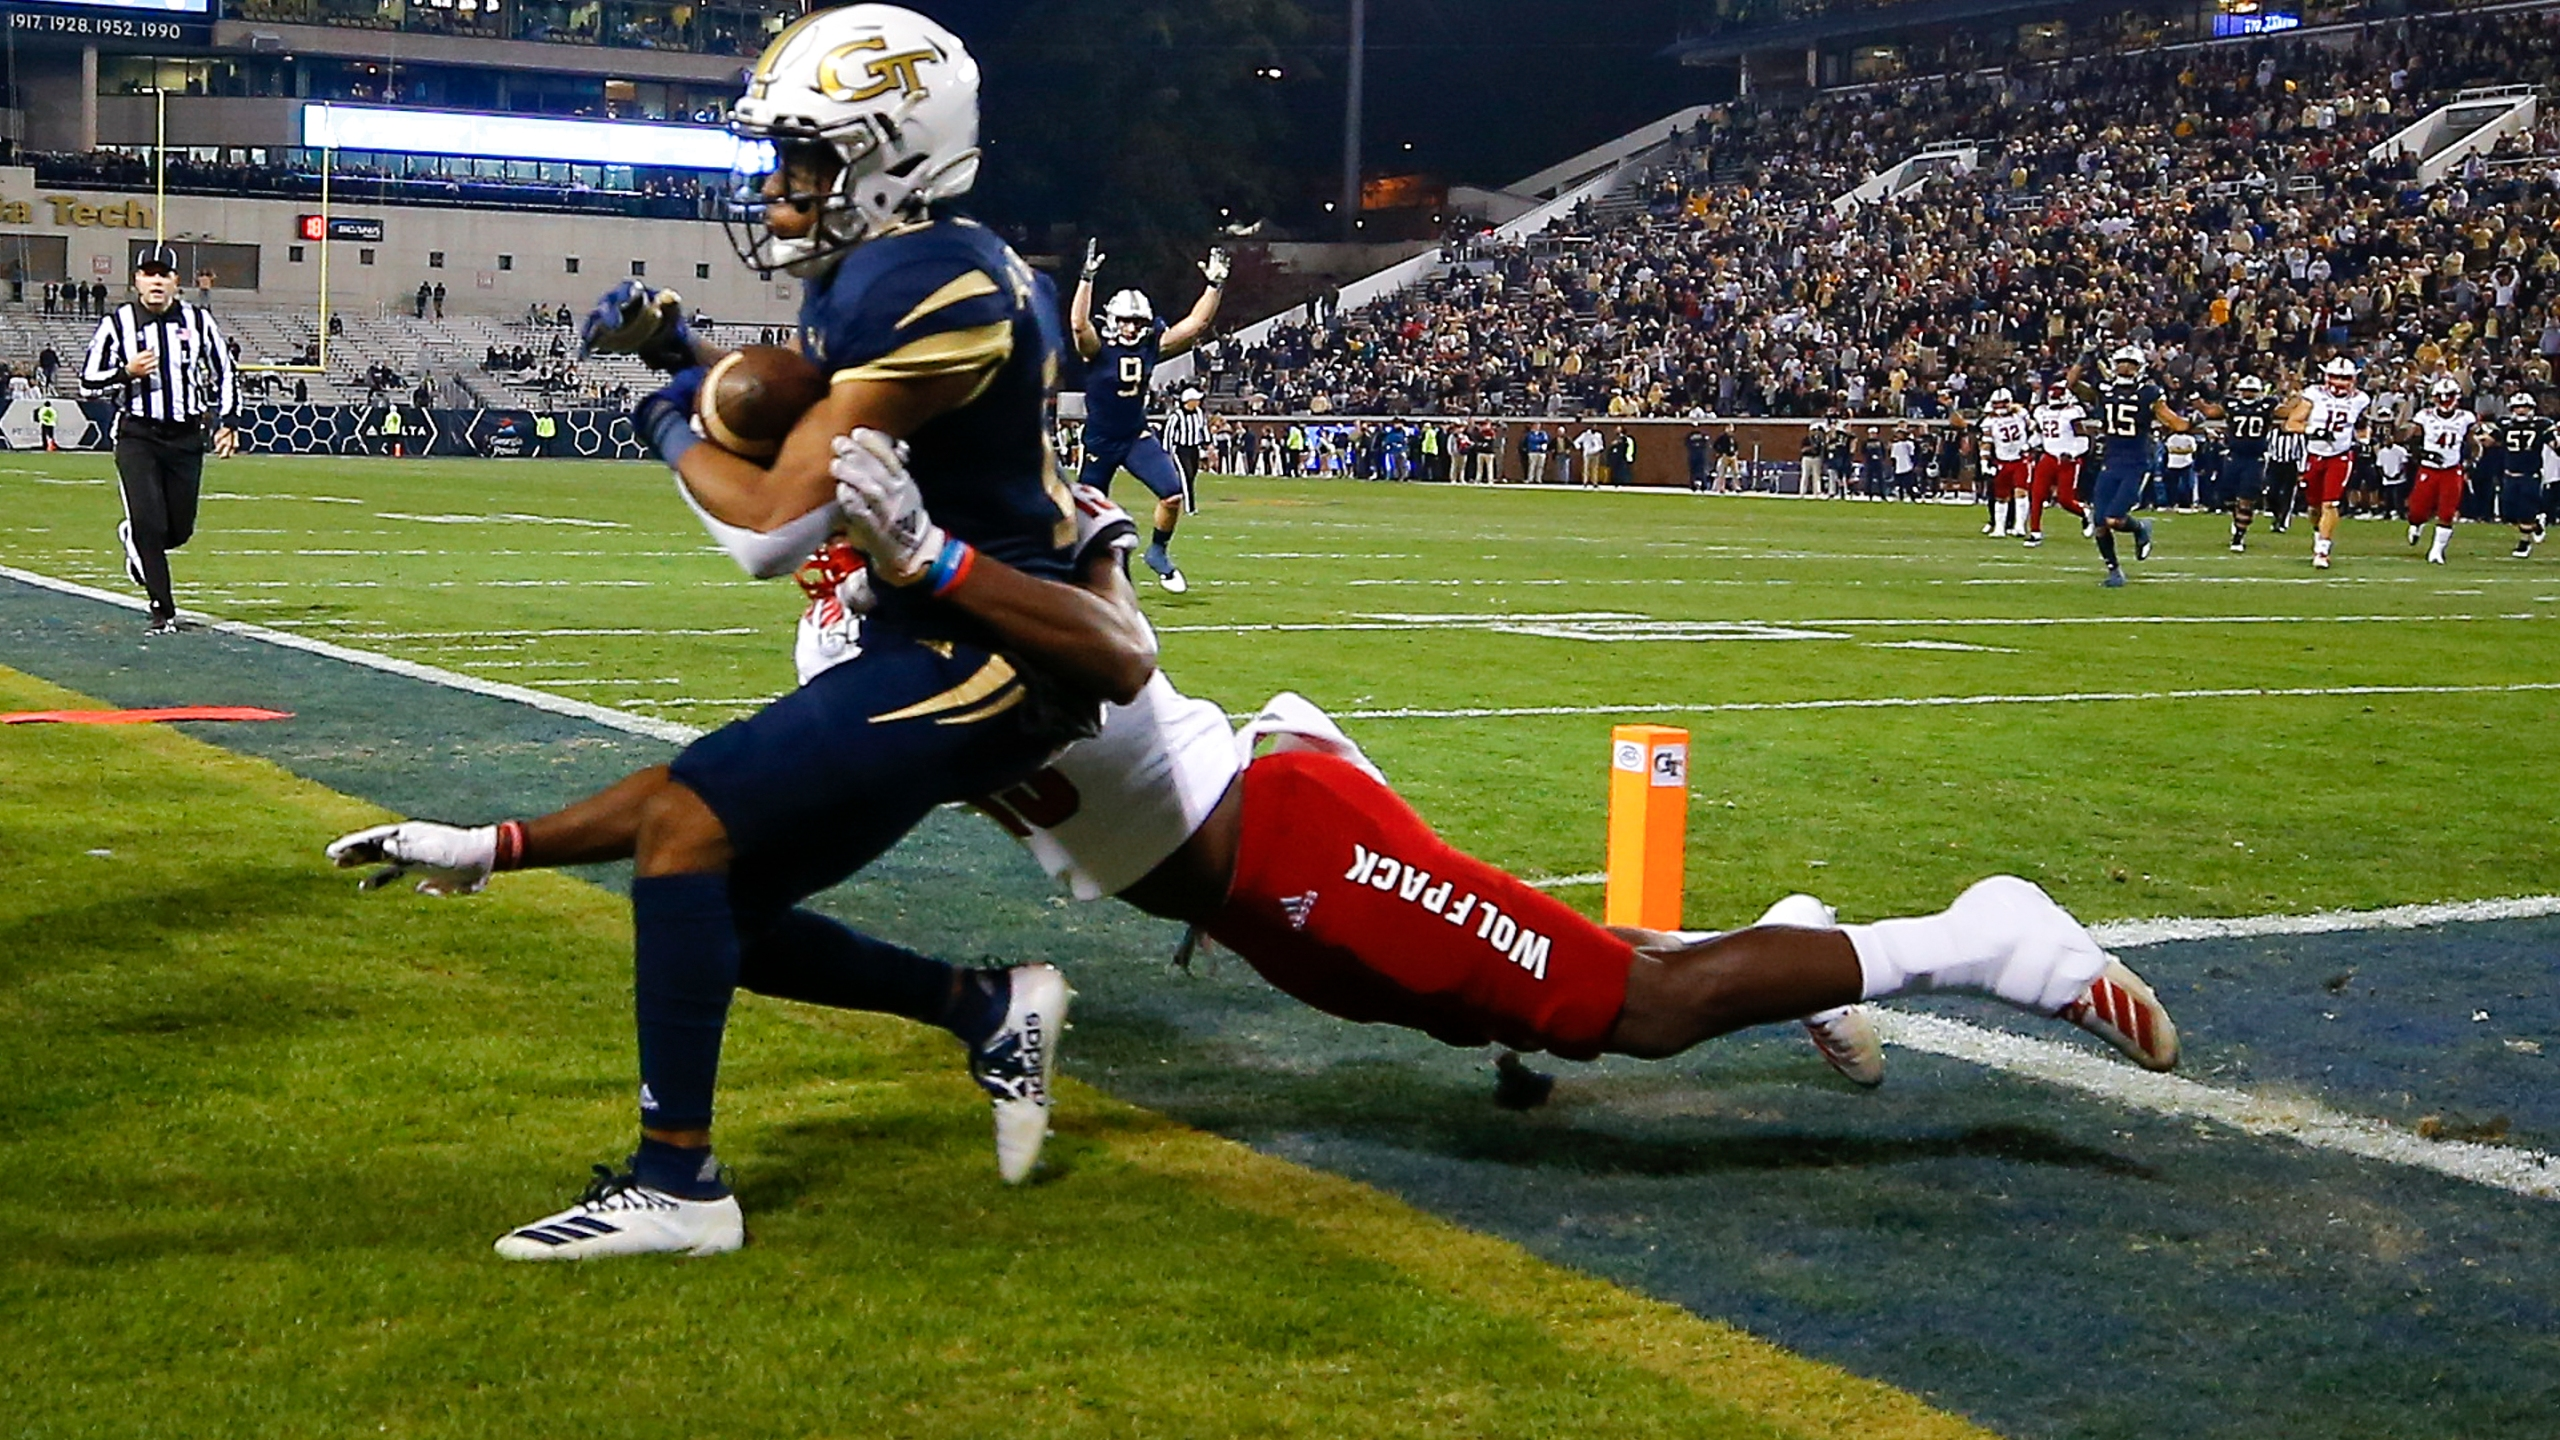 Nc State To Miss Bowl Game After 4th Straight Loss Cbs 17